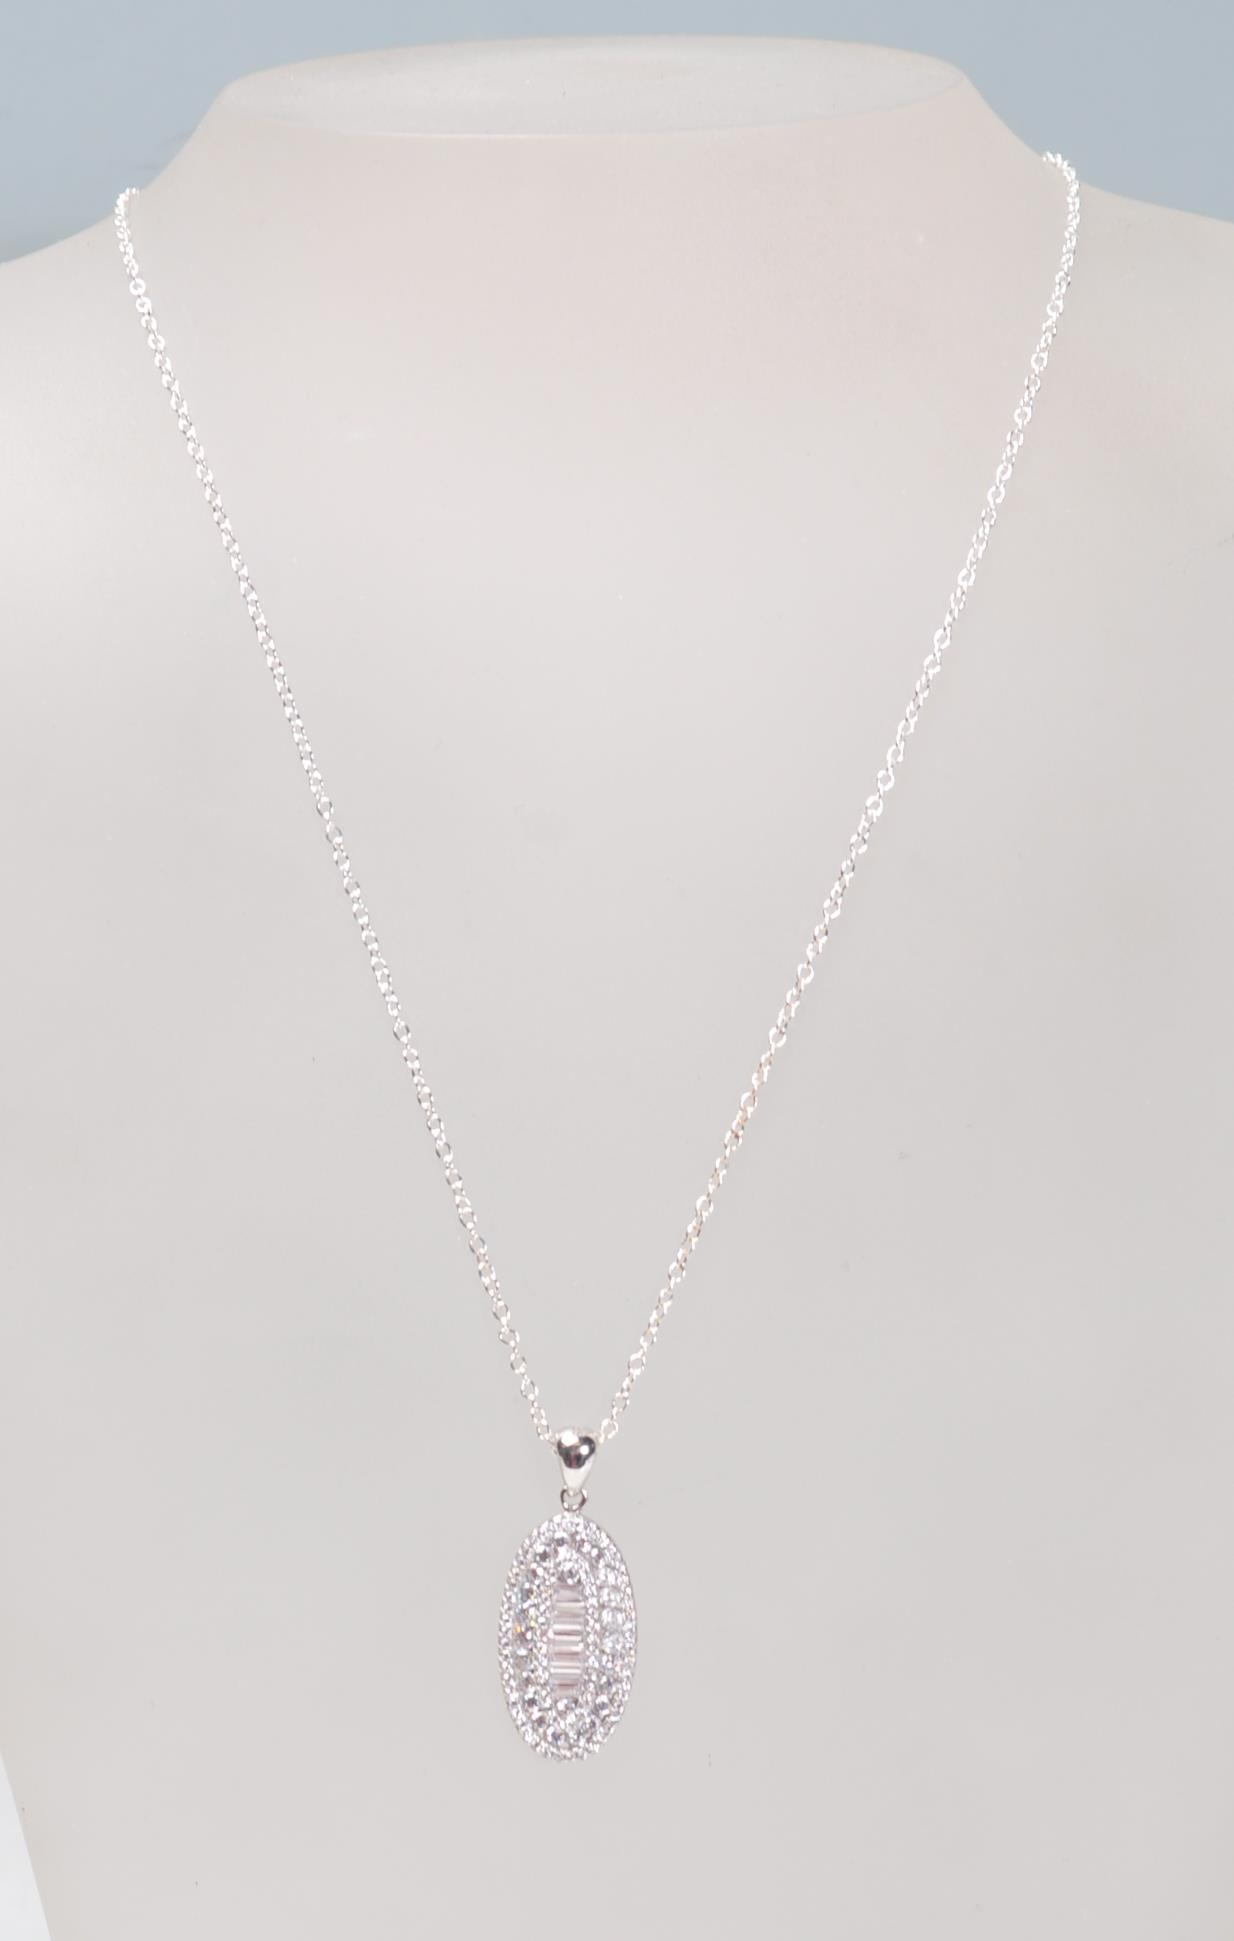 STAMPED 925 SILVER PENDANT NECKLACE SET WITH CZ'S.